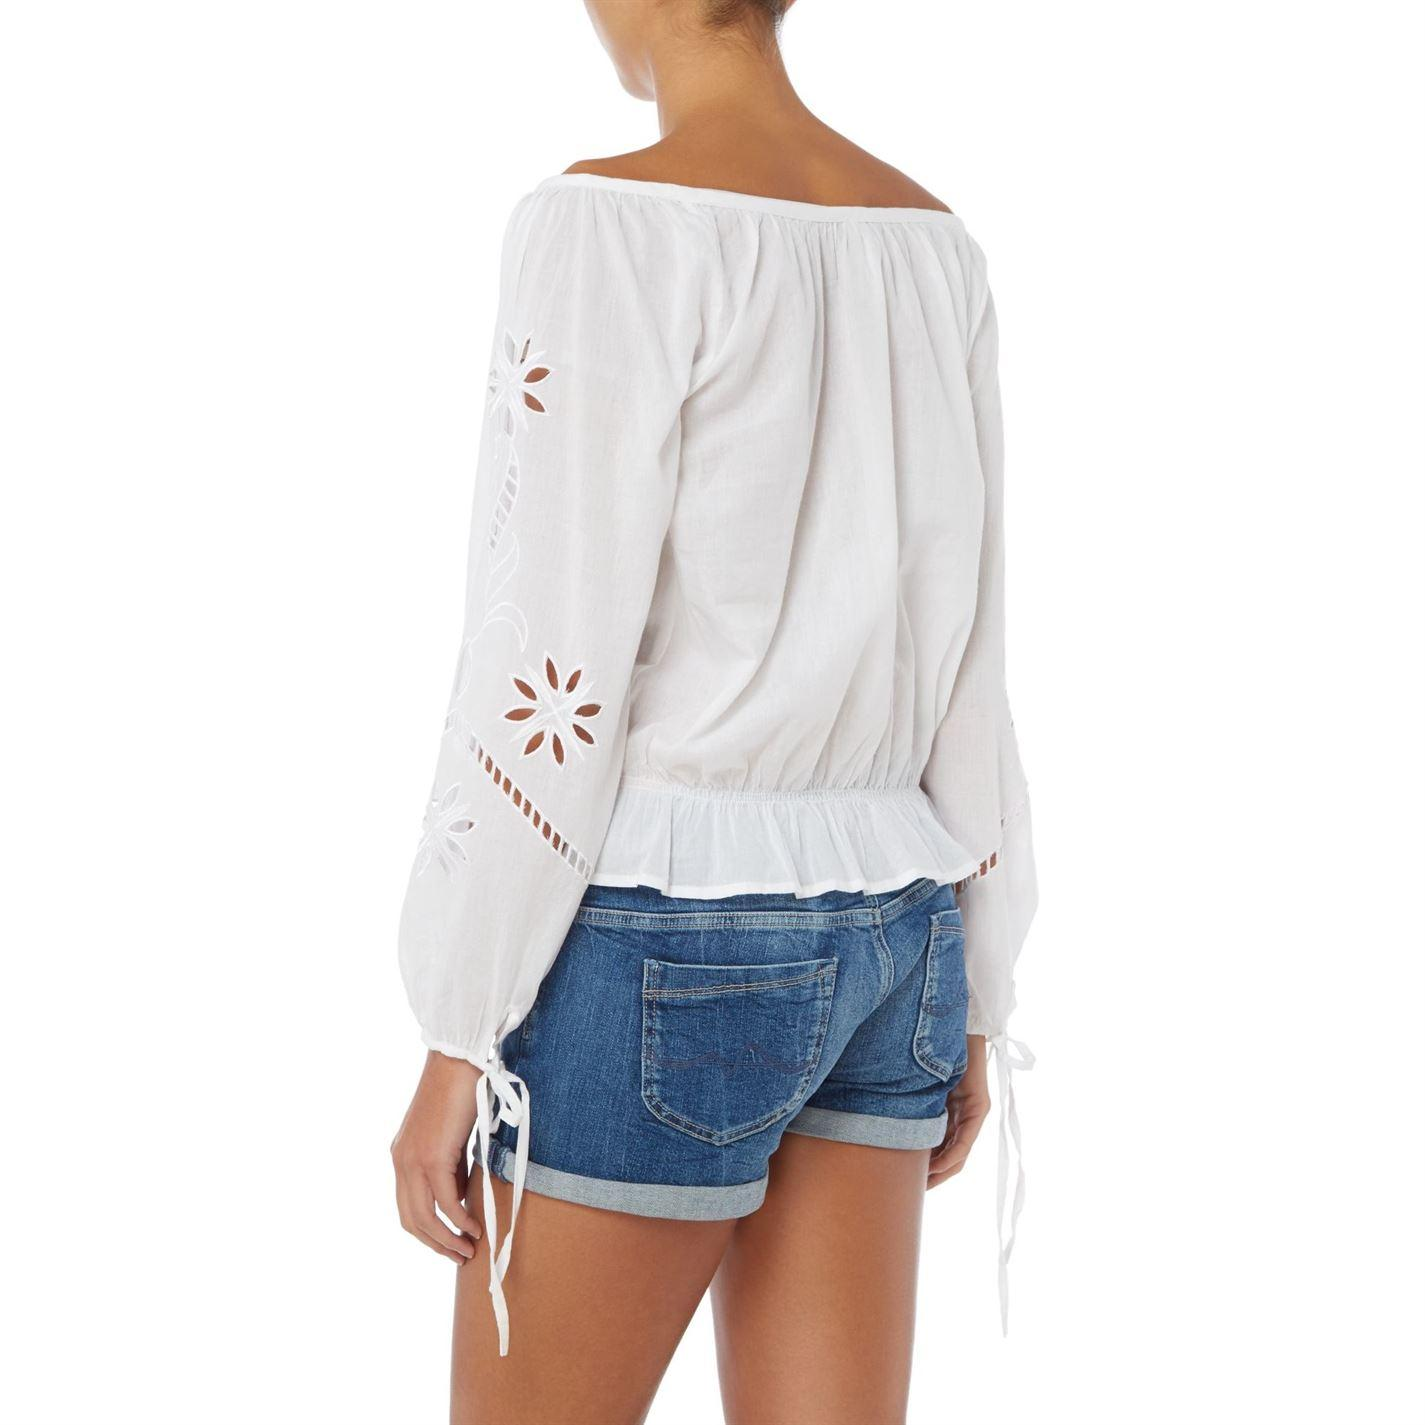 Pepe Jeans Denim Jasmine Shirt in White